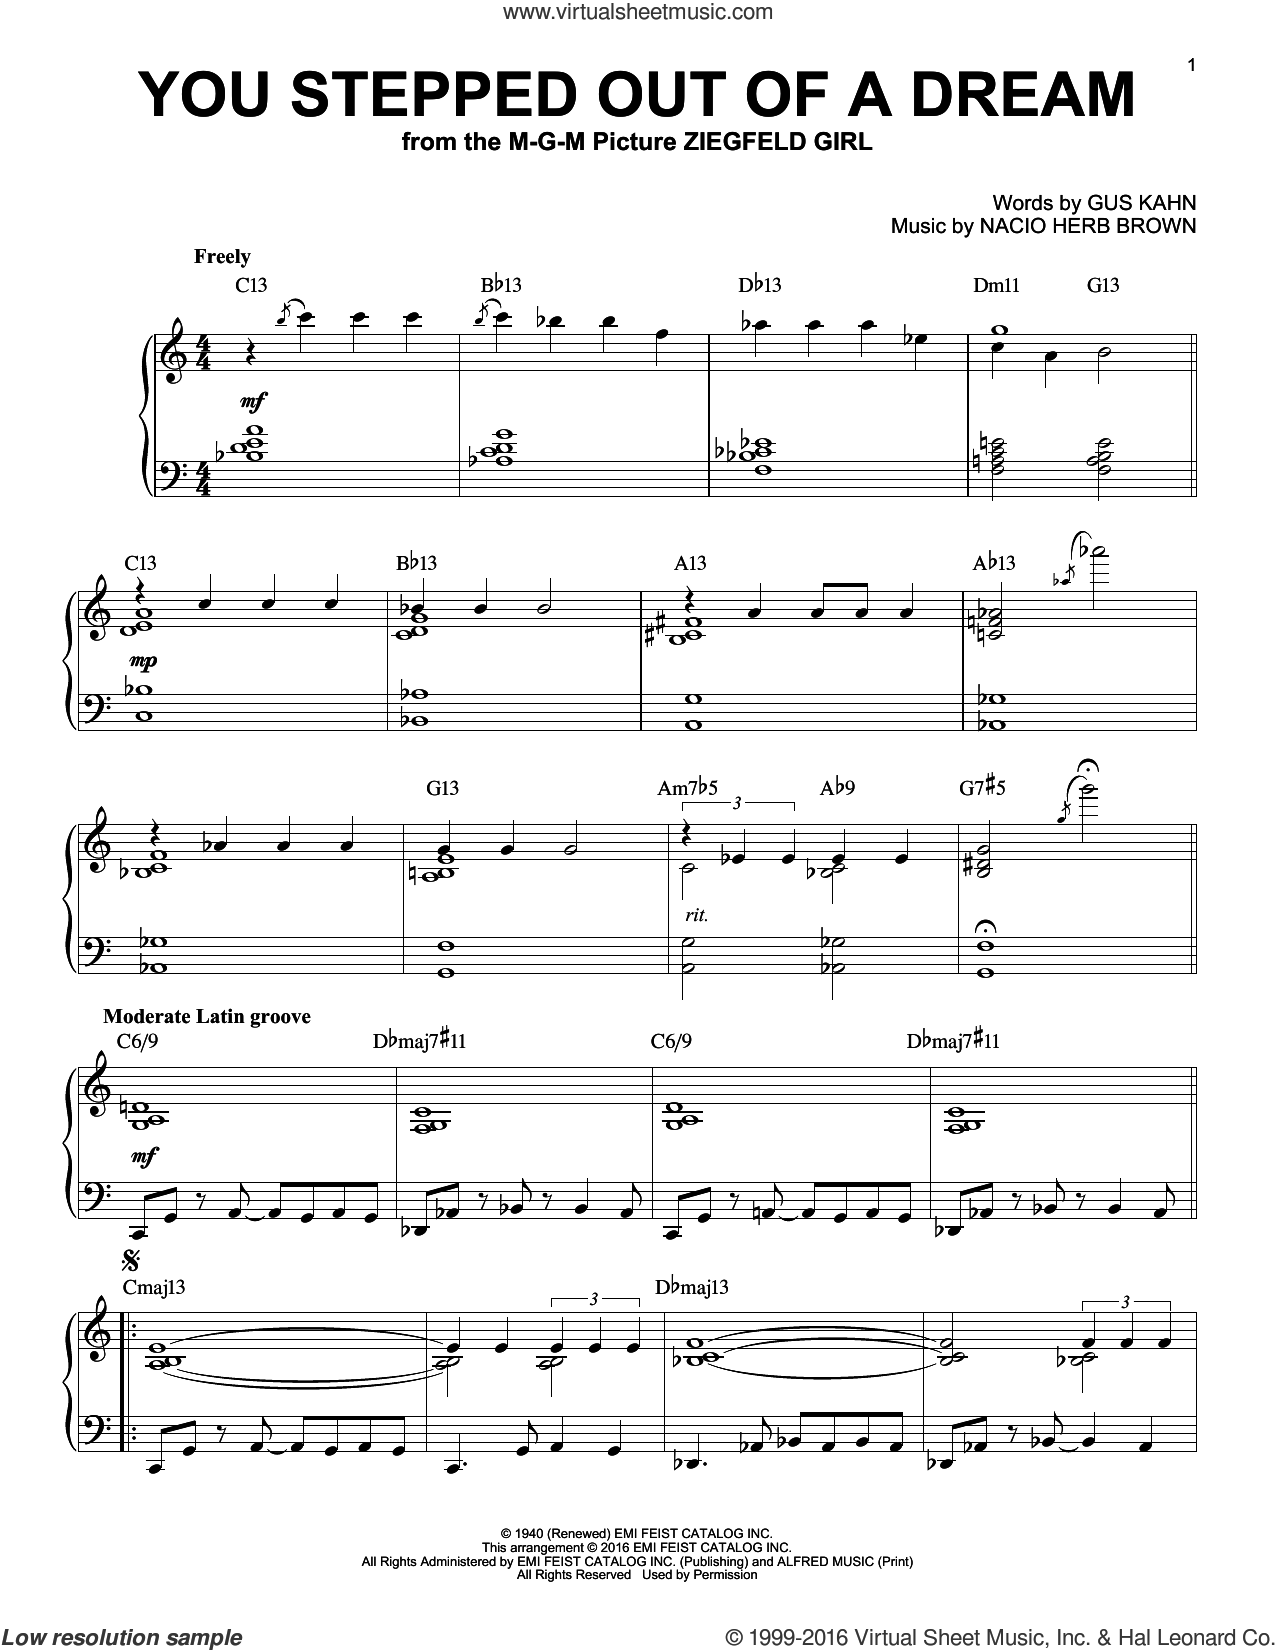 You Stepped Out Of A Dream sheet music for piano solo by Nacio Herb Brown and Gus Kahn, intermediate skill level